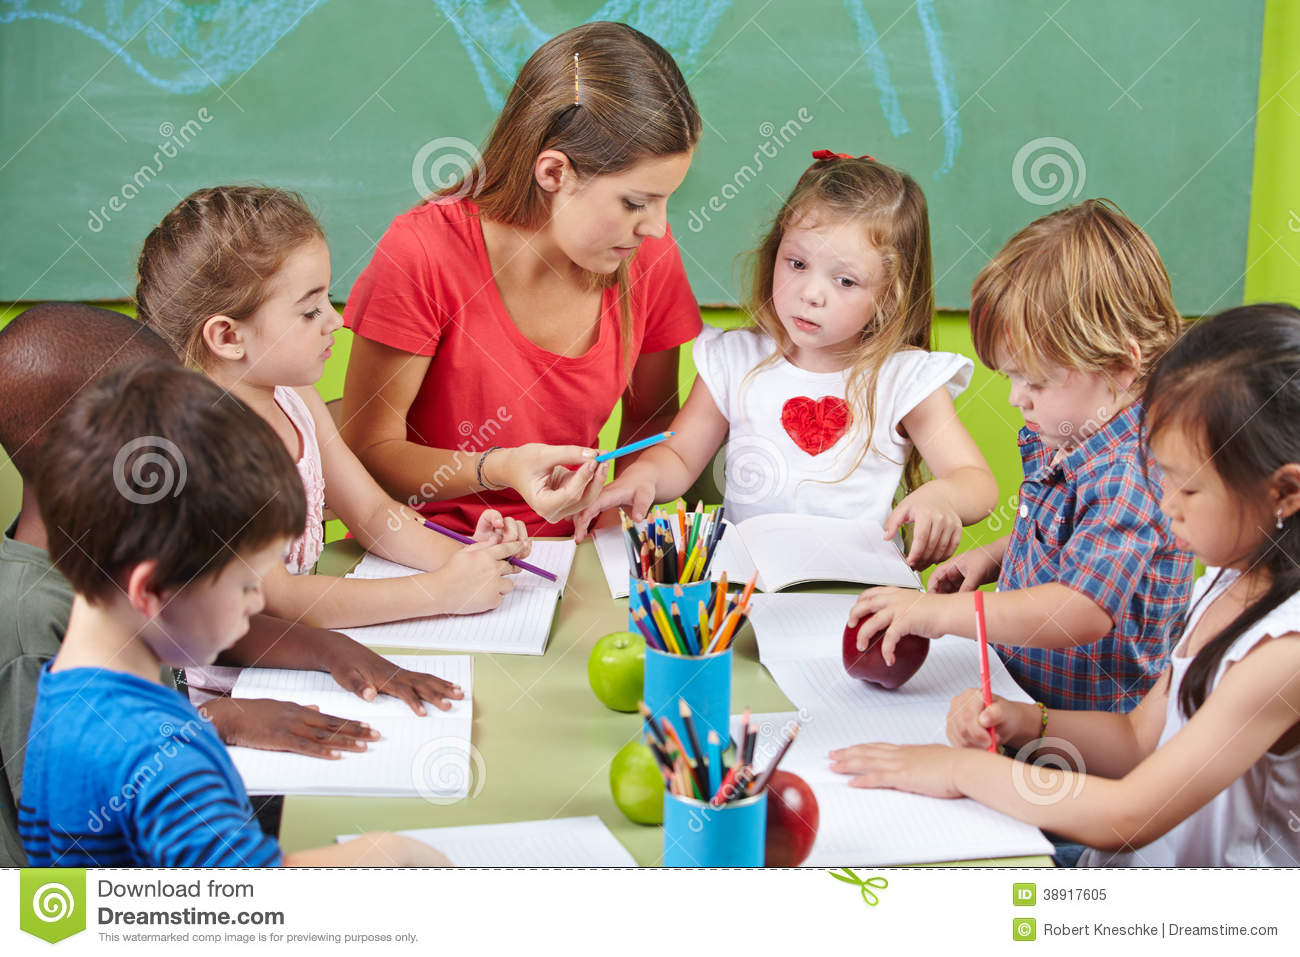 Http Www Dreamstime Com Royalty Free Stock Photo Children Learning Writing Together Preschool Nursery Teacher Image38917605